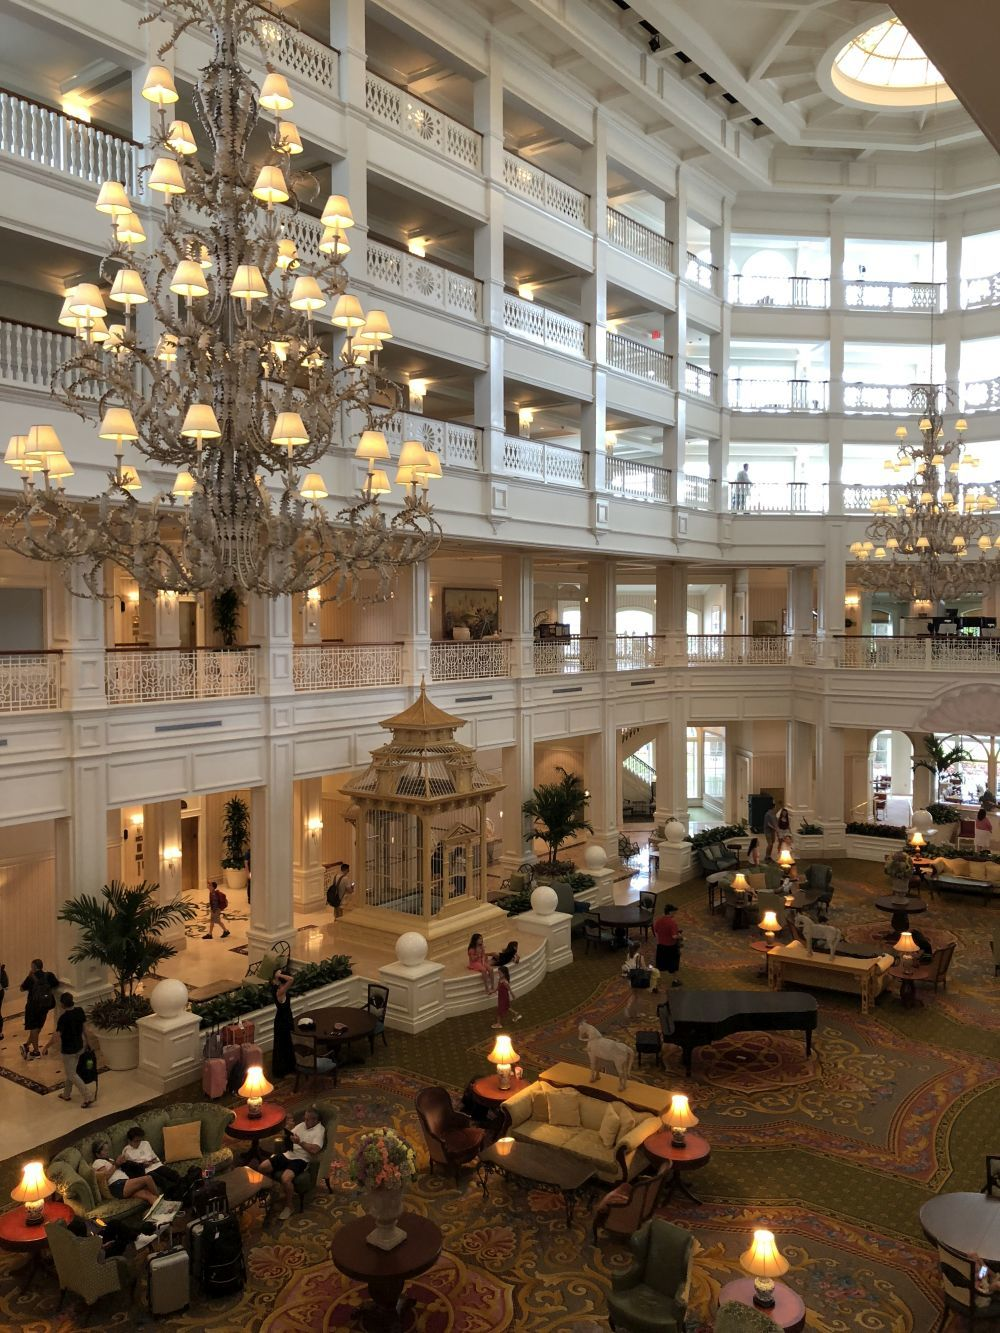 El hall del Grand Floridian Cafe.